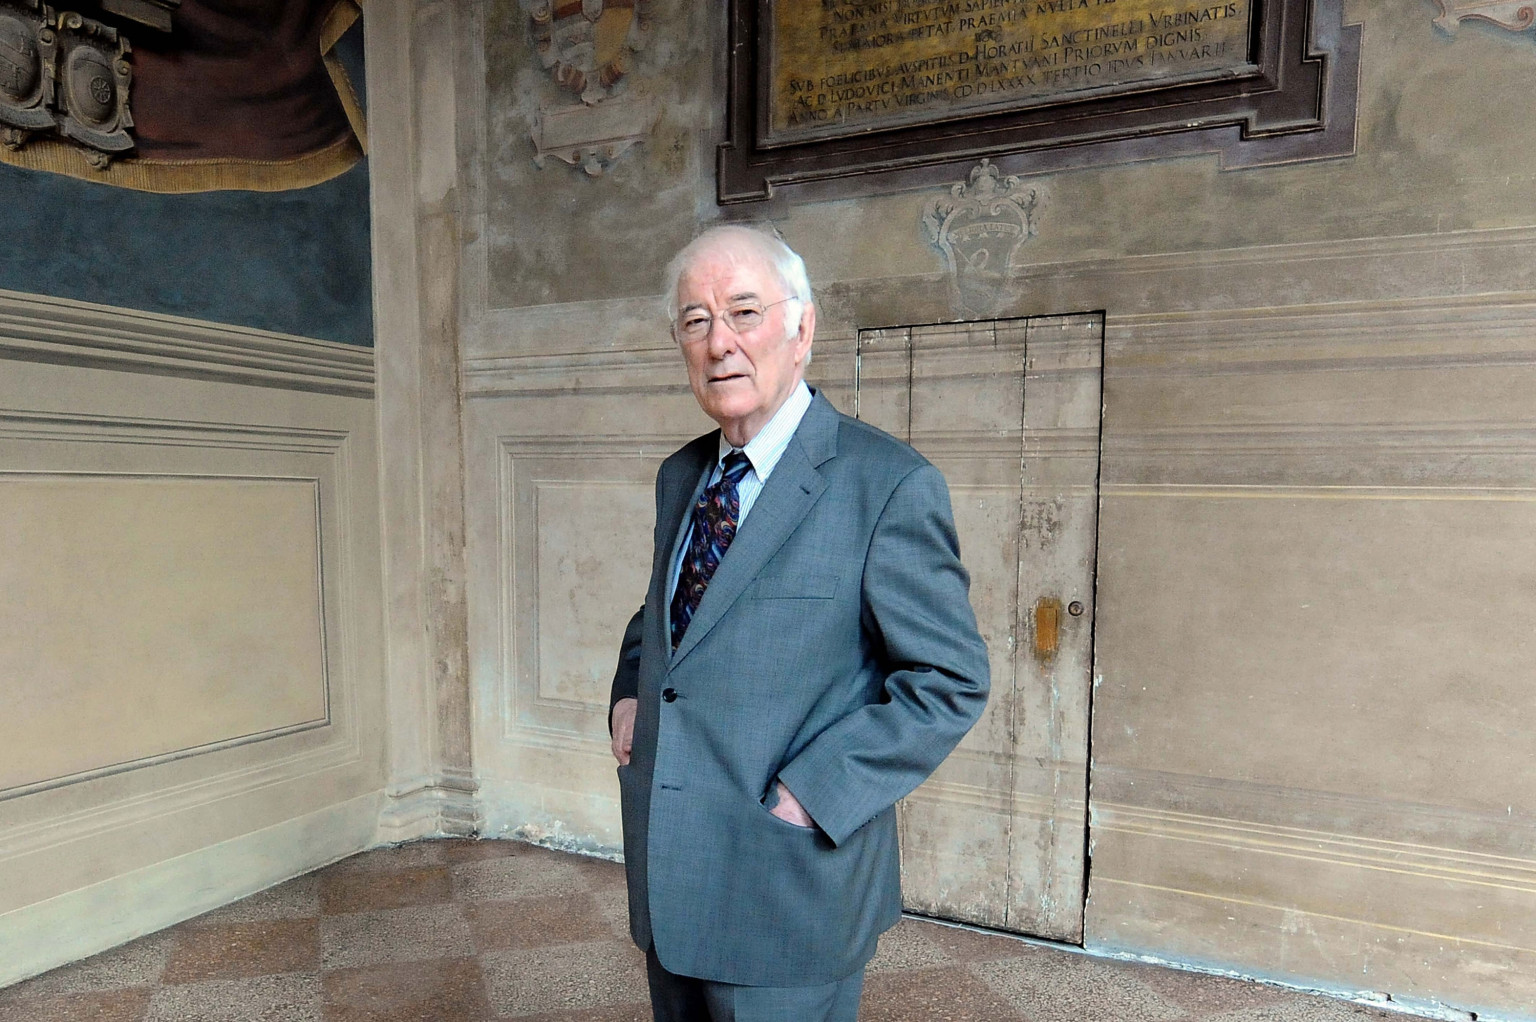 BOLOGNA, ITALY - APRIL 03: Irish author Seamus Heaney, recipient of 1995 Nobel prize for Literature, attends the celebrations about centenary of italian author Giovanni Pascoli for University of Bologna at Archiginnasio on April 3, 2012 in Bologna, Italy. (Photo by Mario Carlini - Iguana Press/Getty Images)